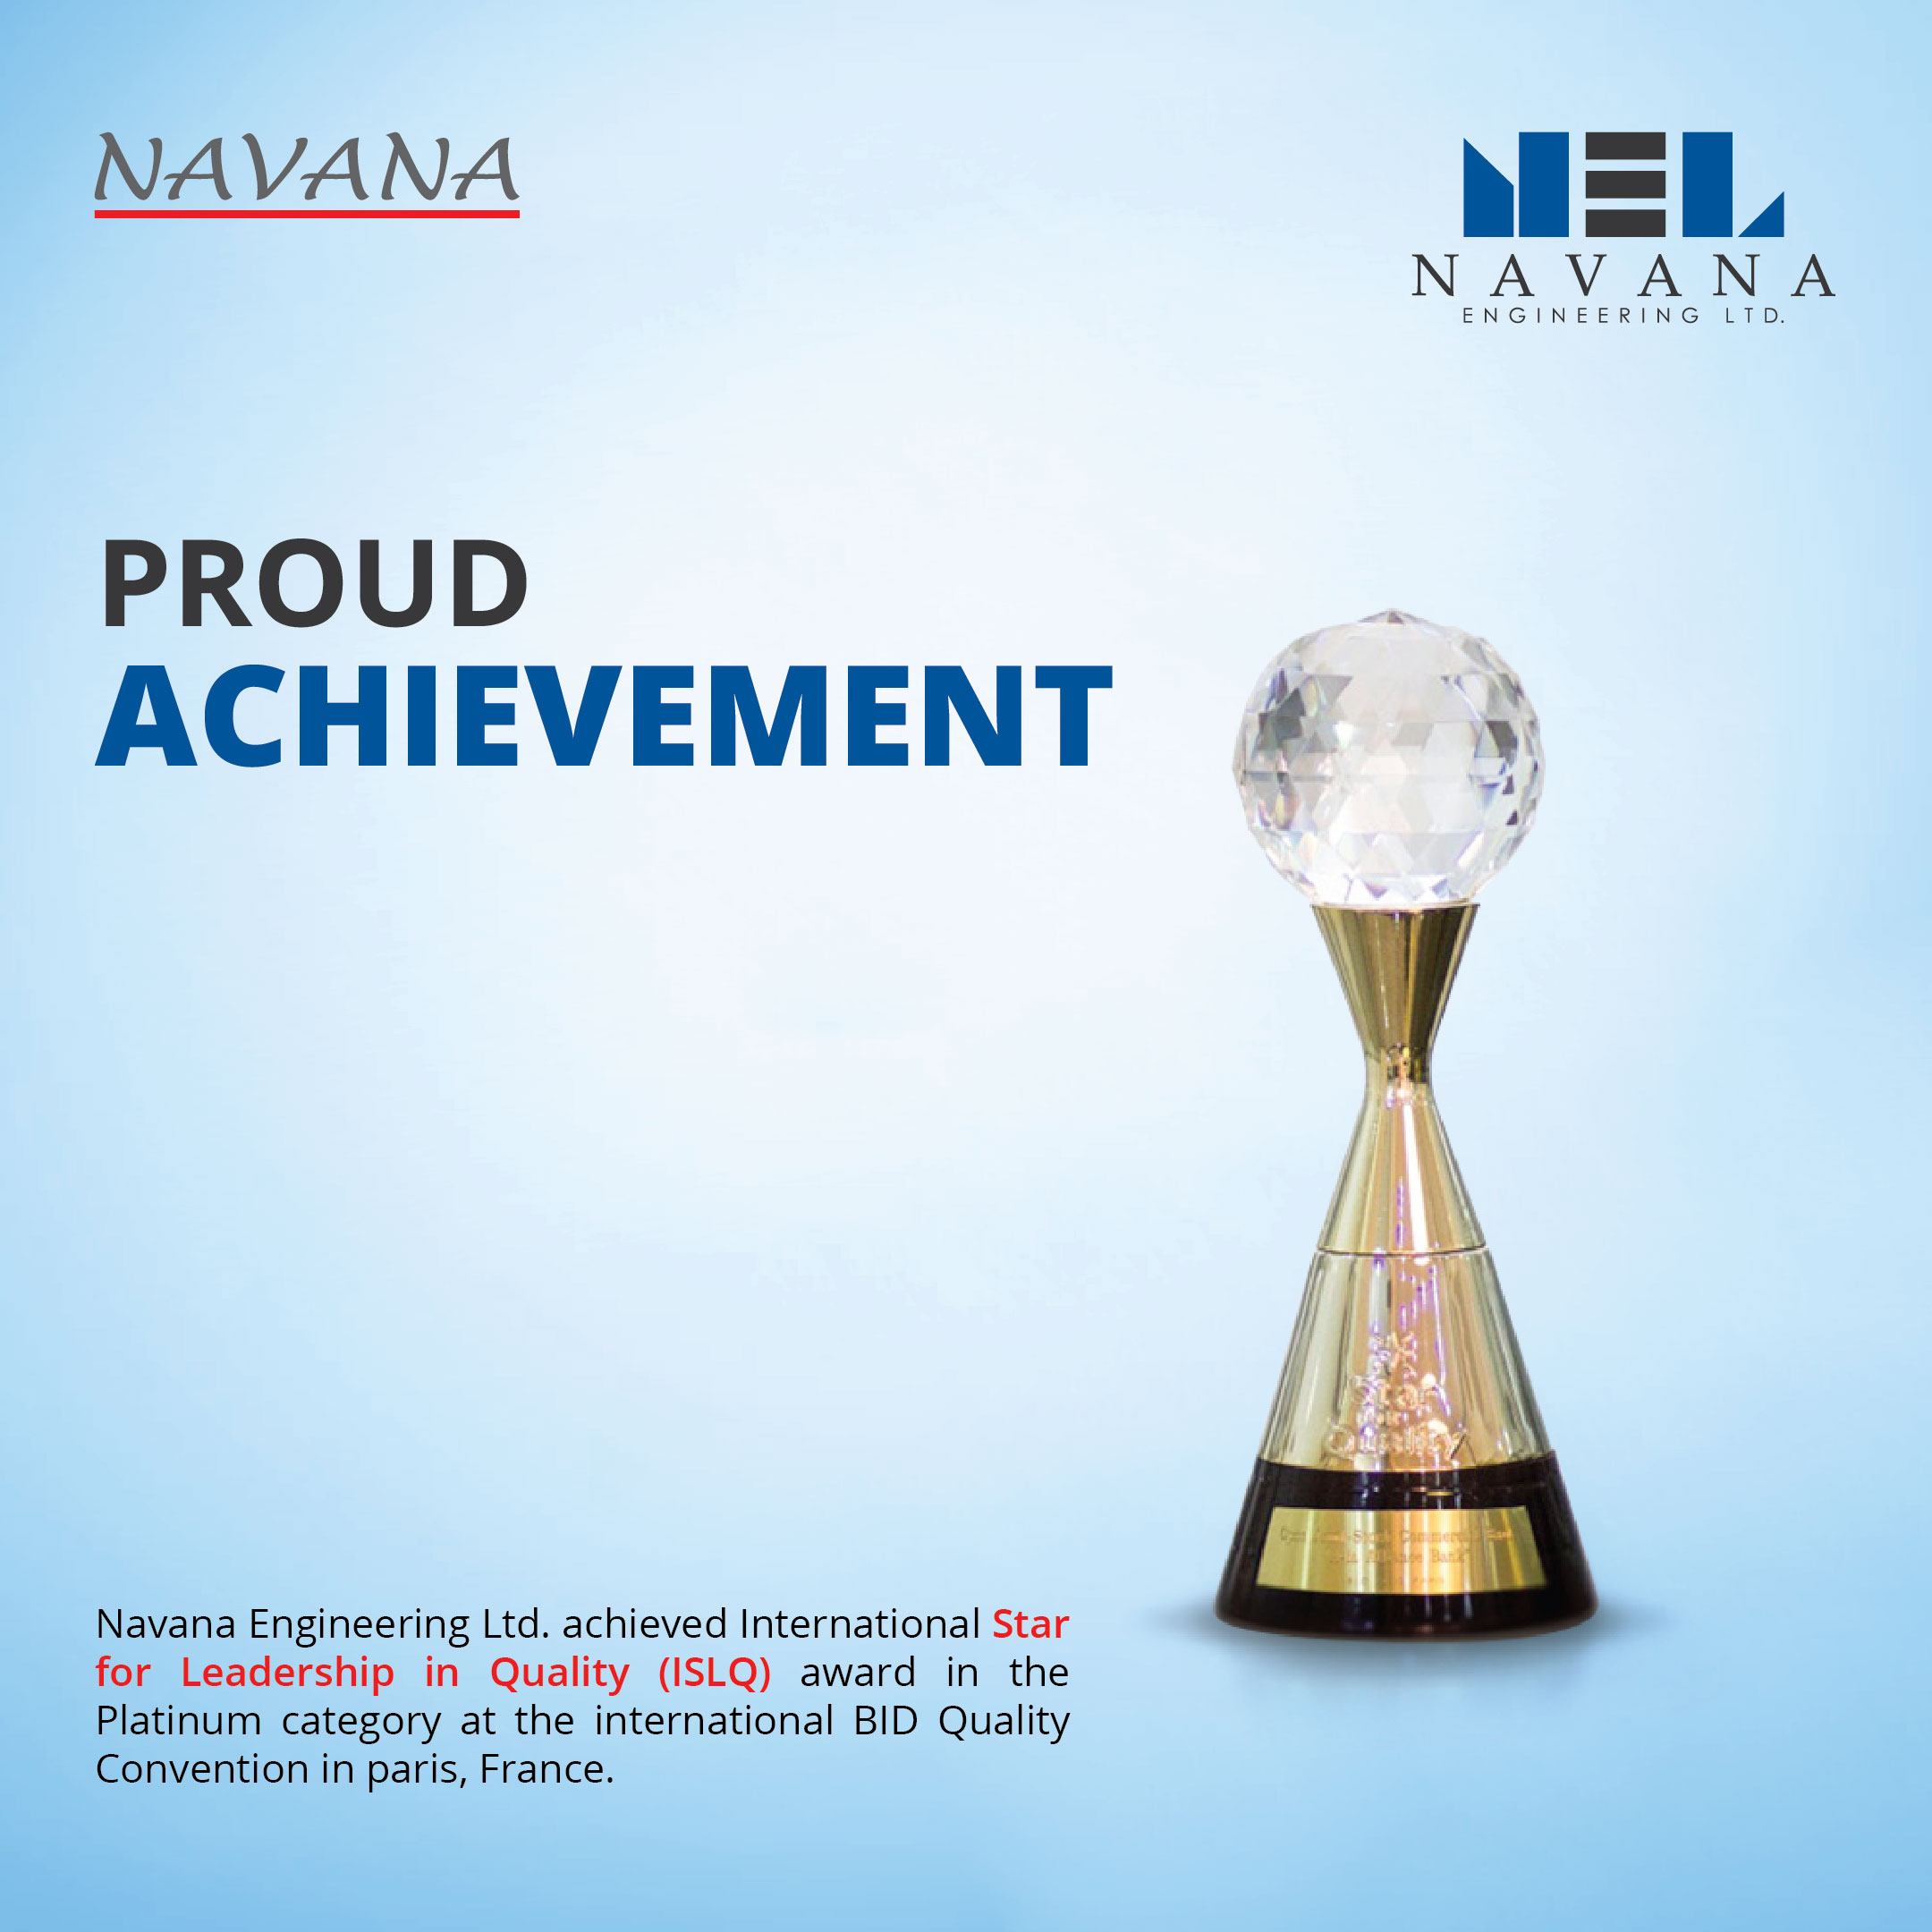 Another International Recognition We Have Achieved (BID Award)